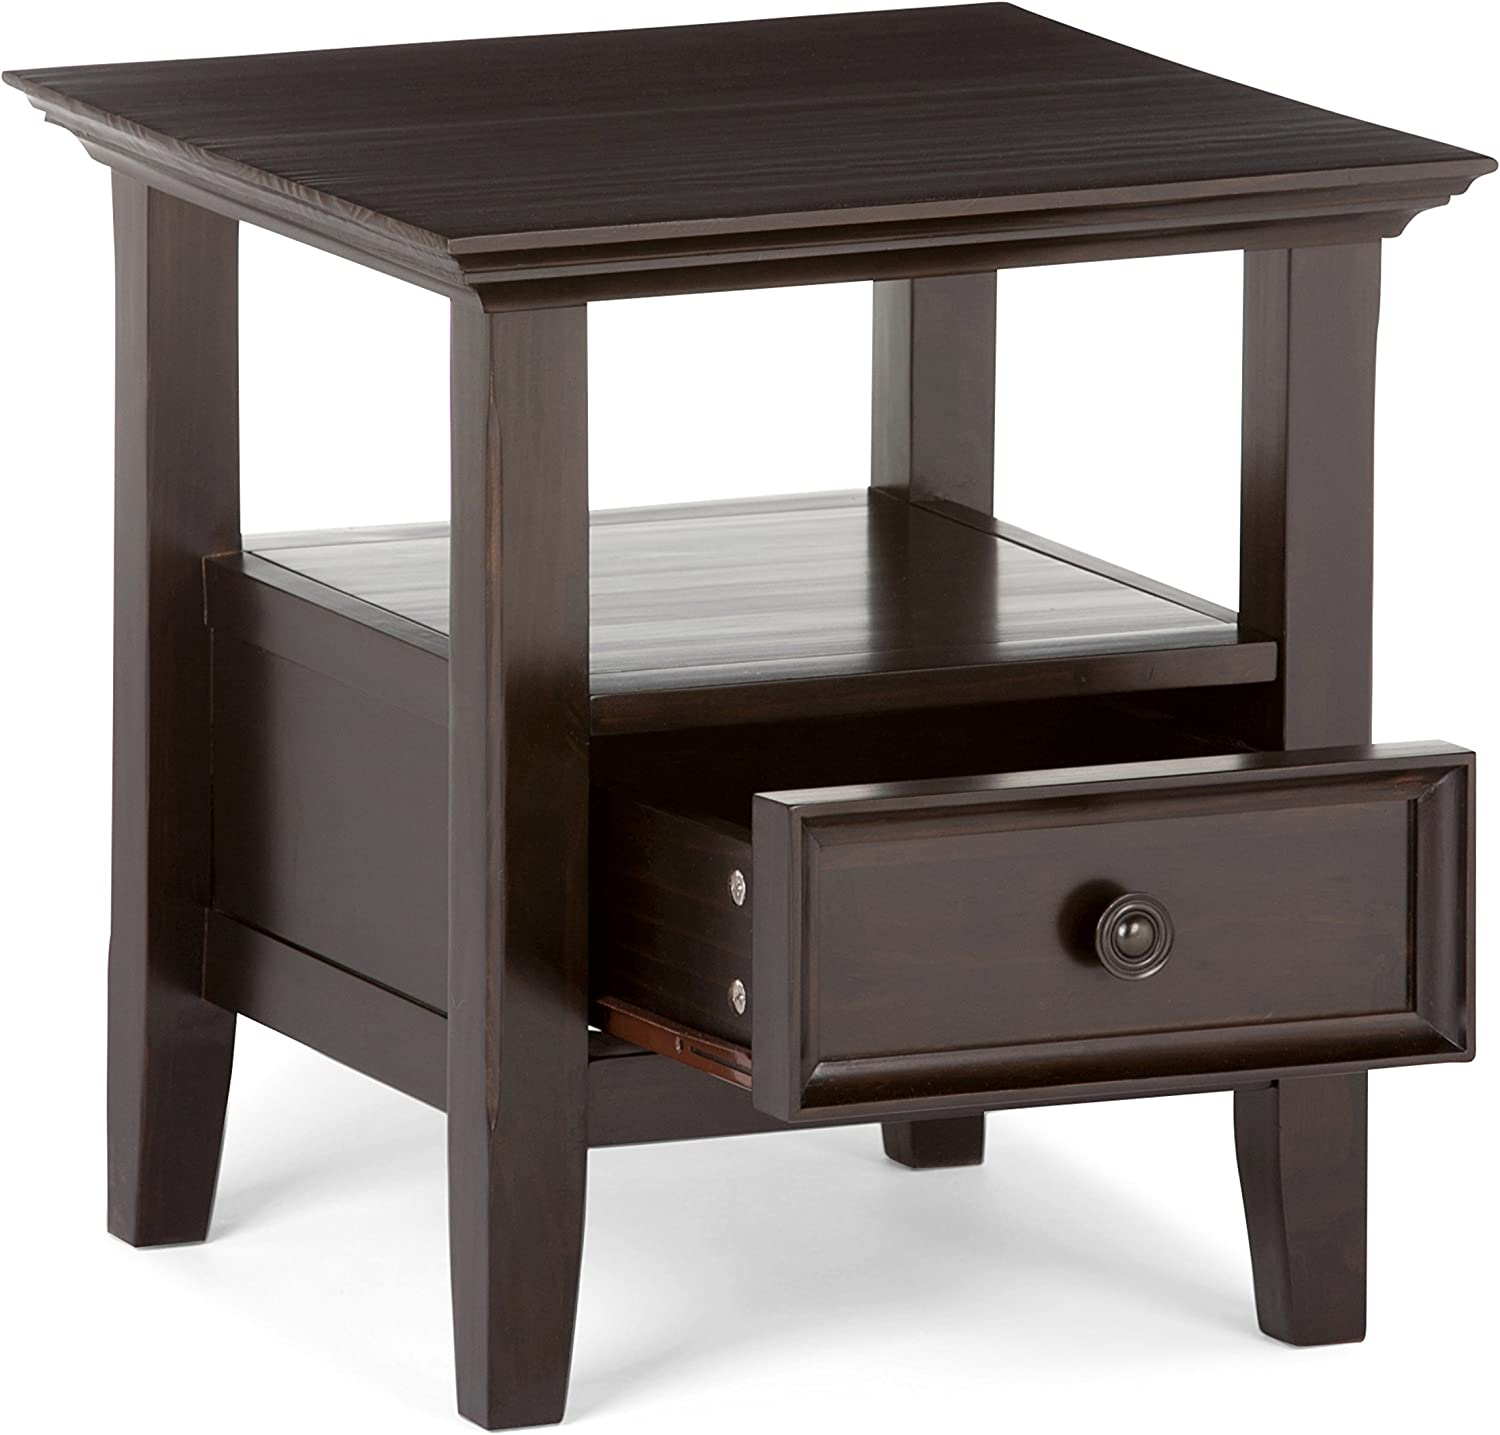 Amazon Com Simpli Home Amherst Solid Wood 19 Inch Wide Square Traditional End Side Table In Dark Brown With Storage 1 Drawer And 1 Shelf For The Living Room And Bedroom Furniture Decor